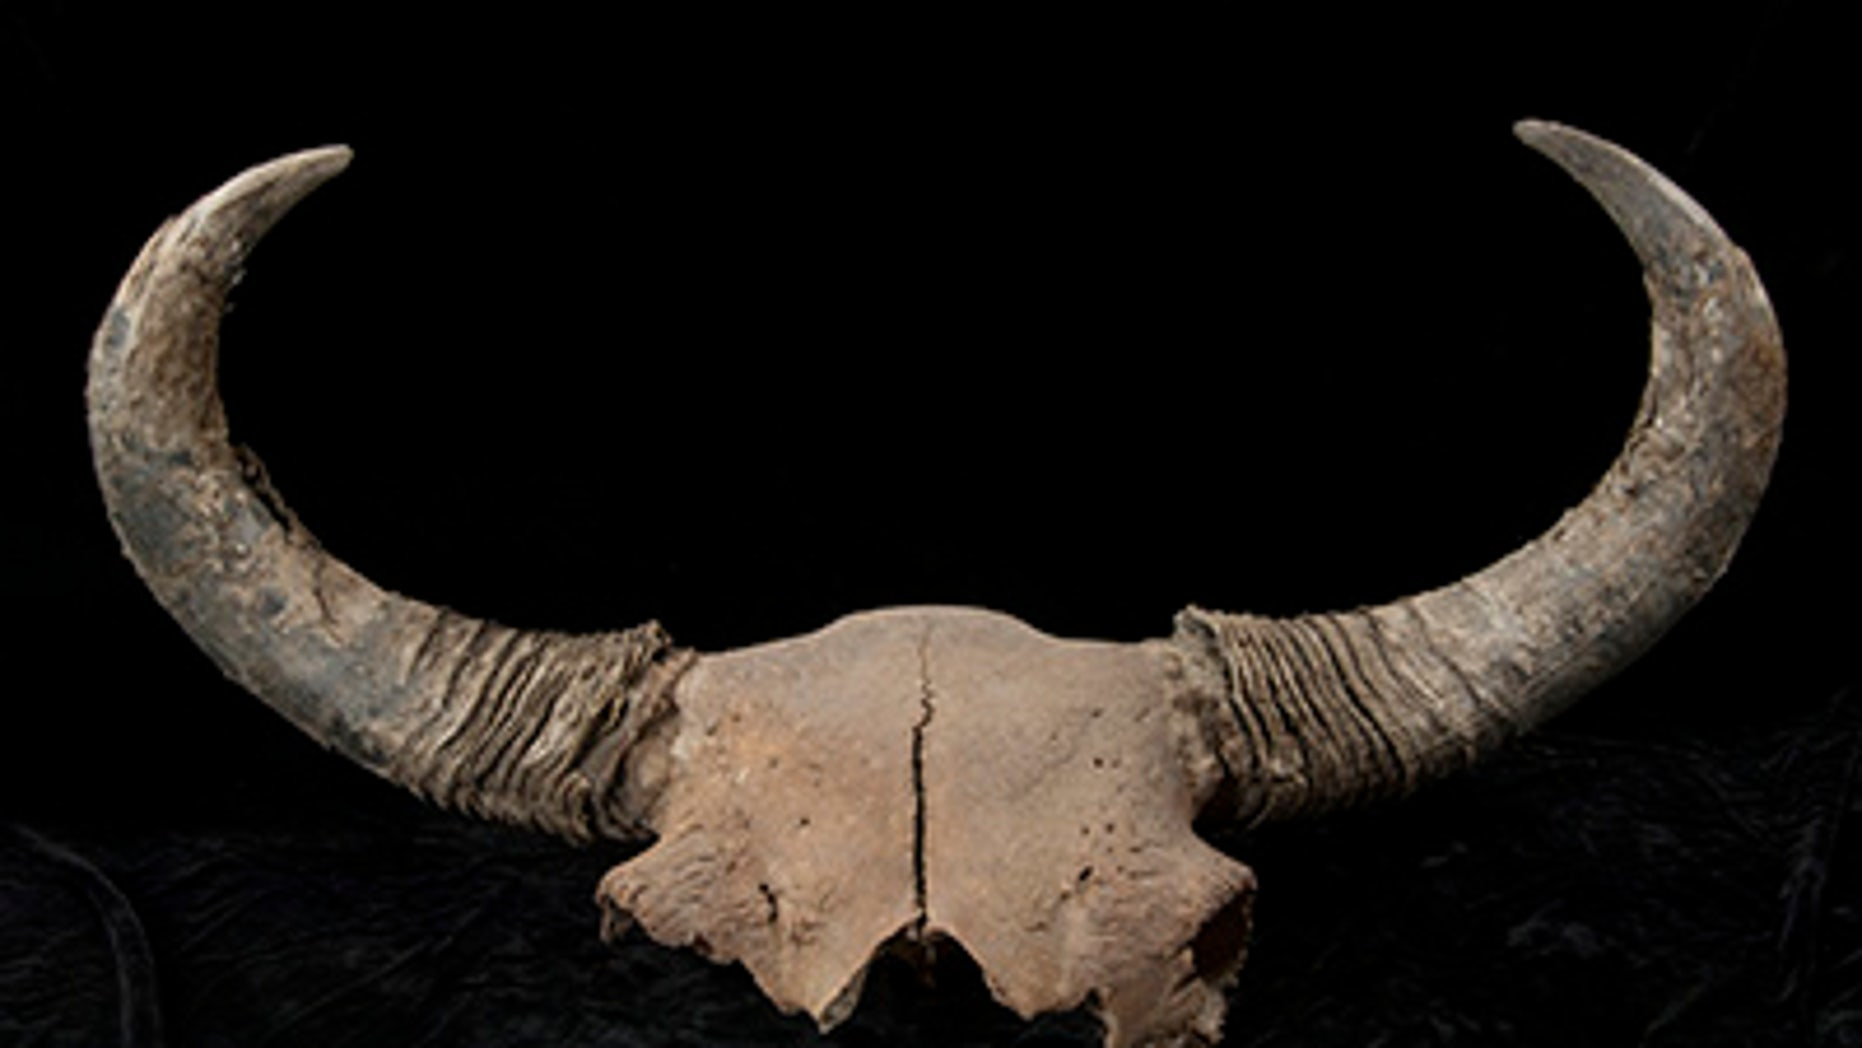 Large fossil steppe bison skull with both horn cores recovered at Quartz Creek